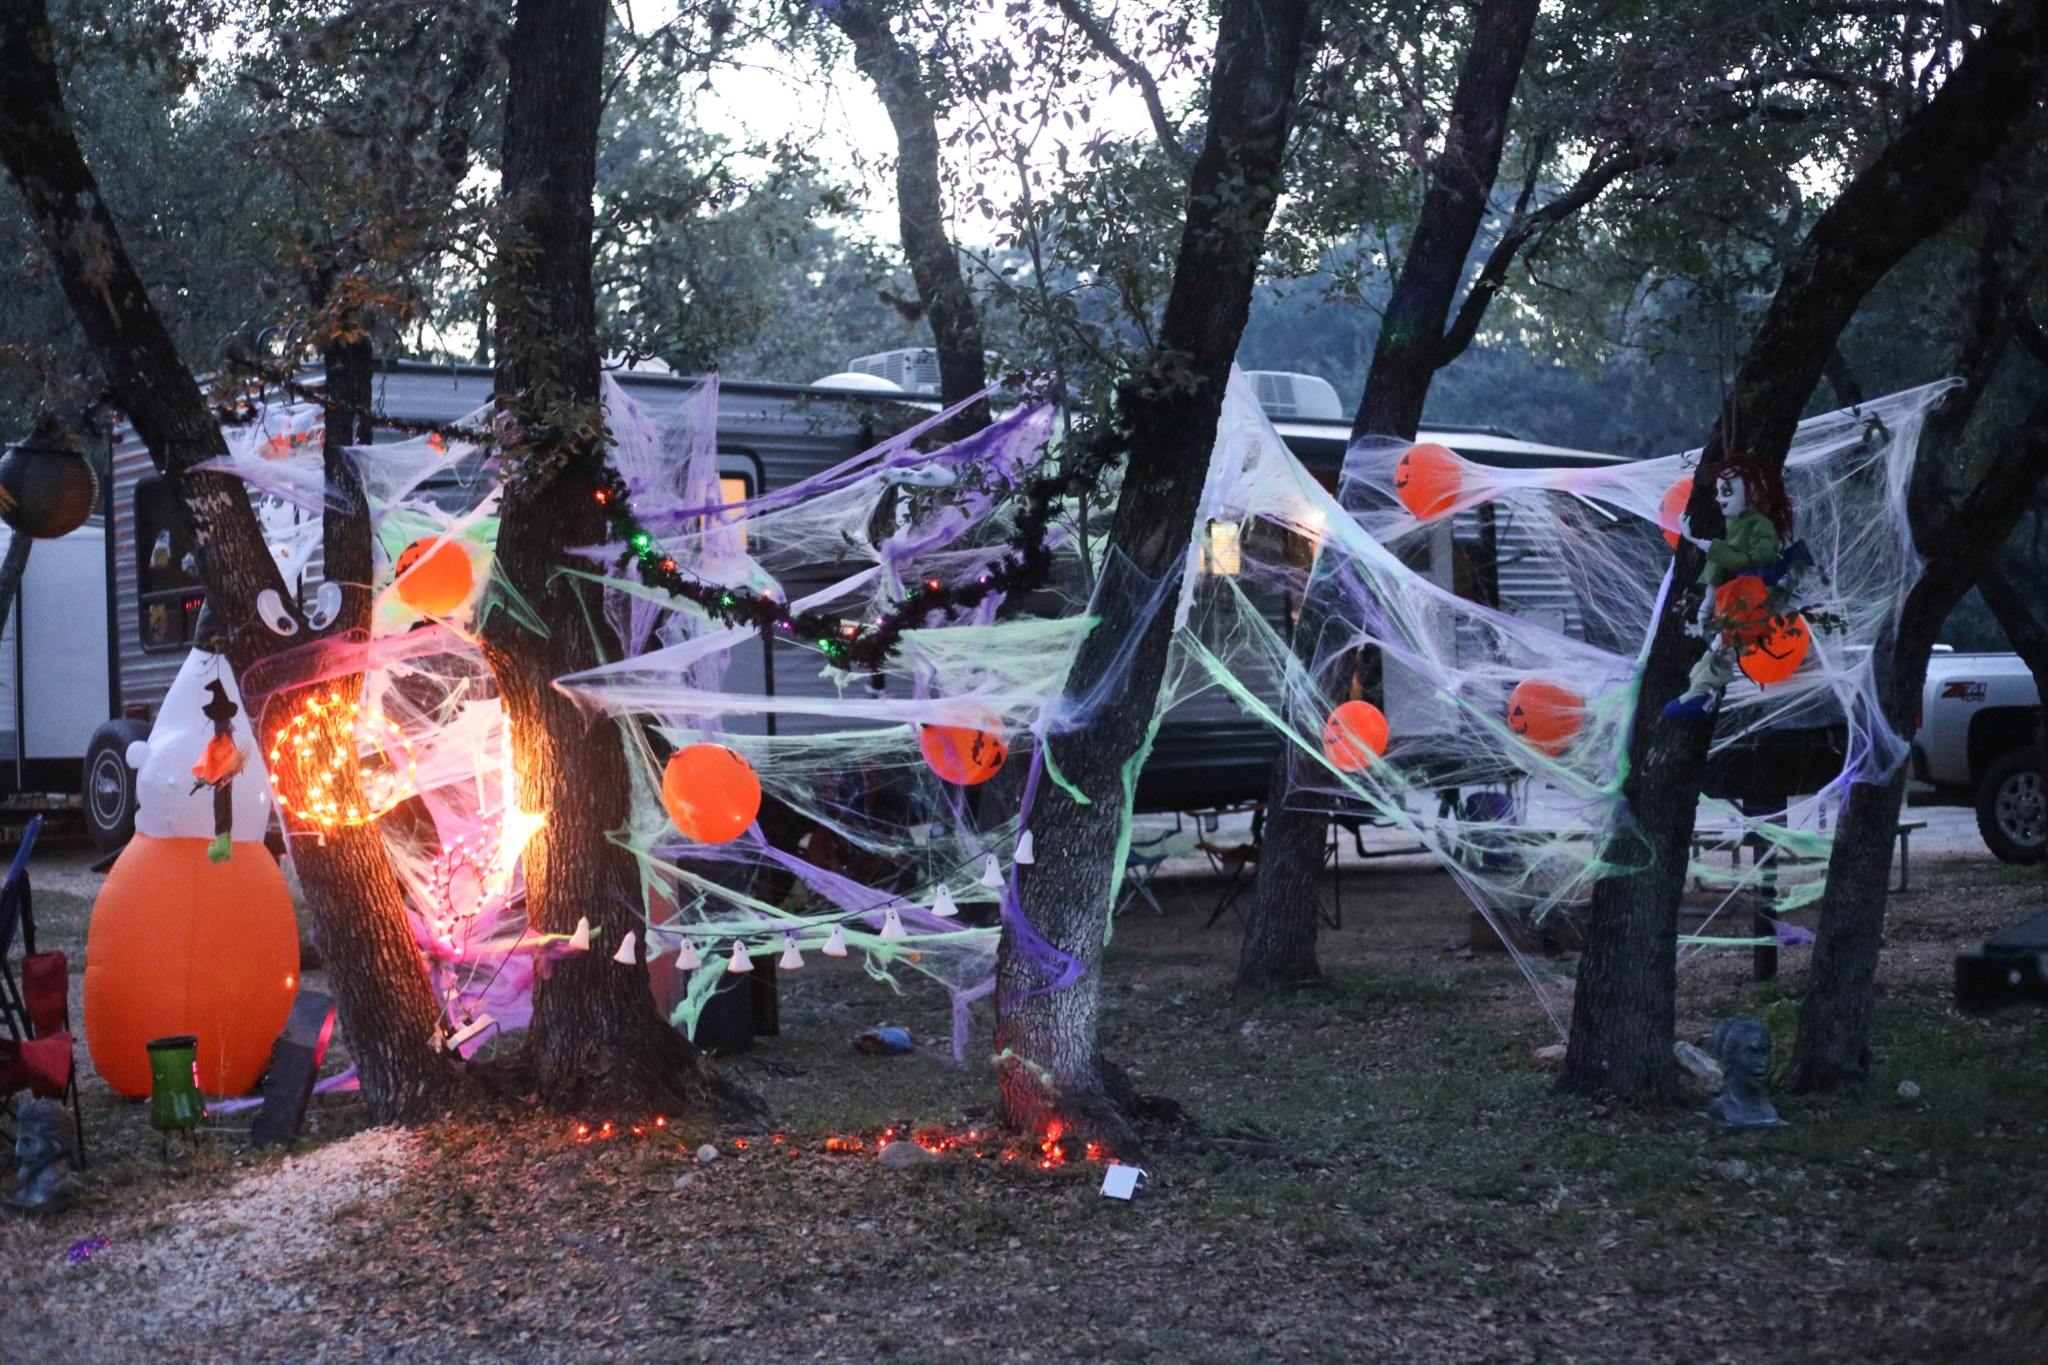 Campground with RV decorated for Halloween with spider webs and lights